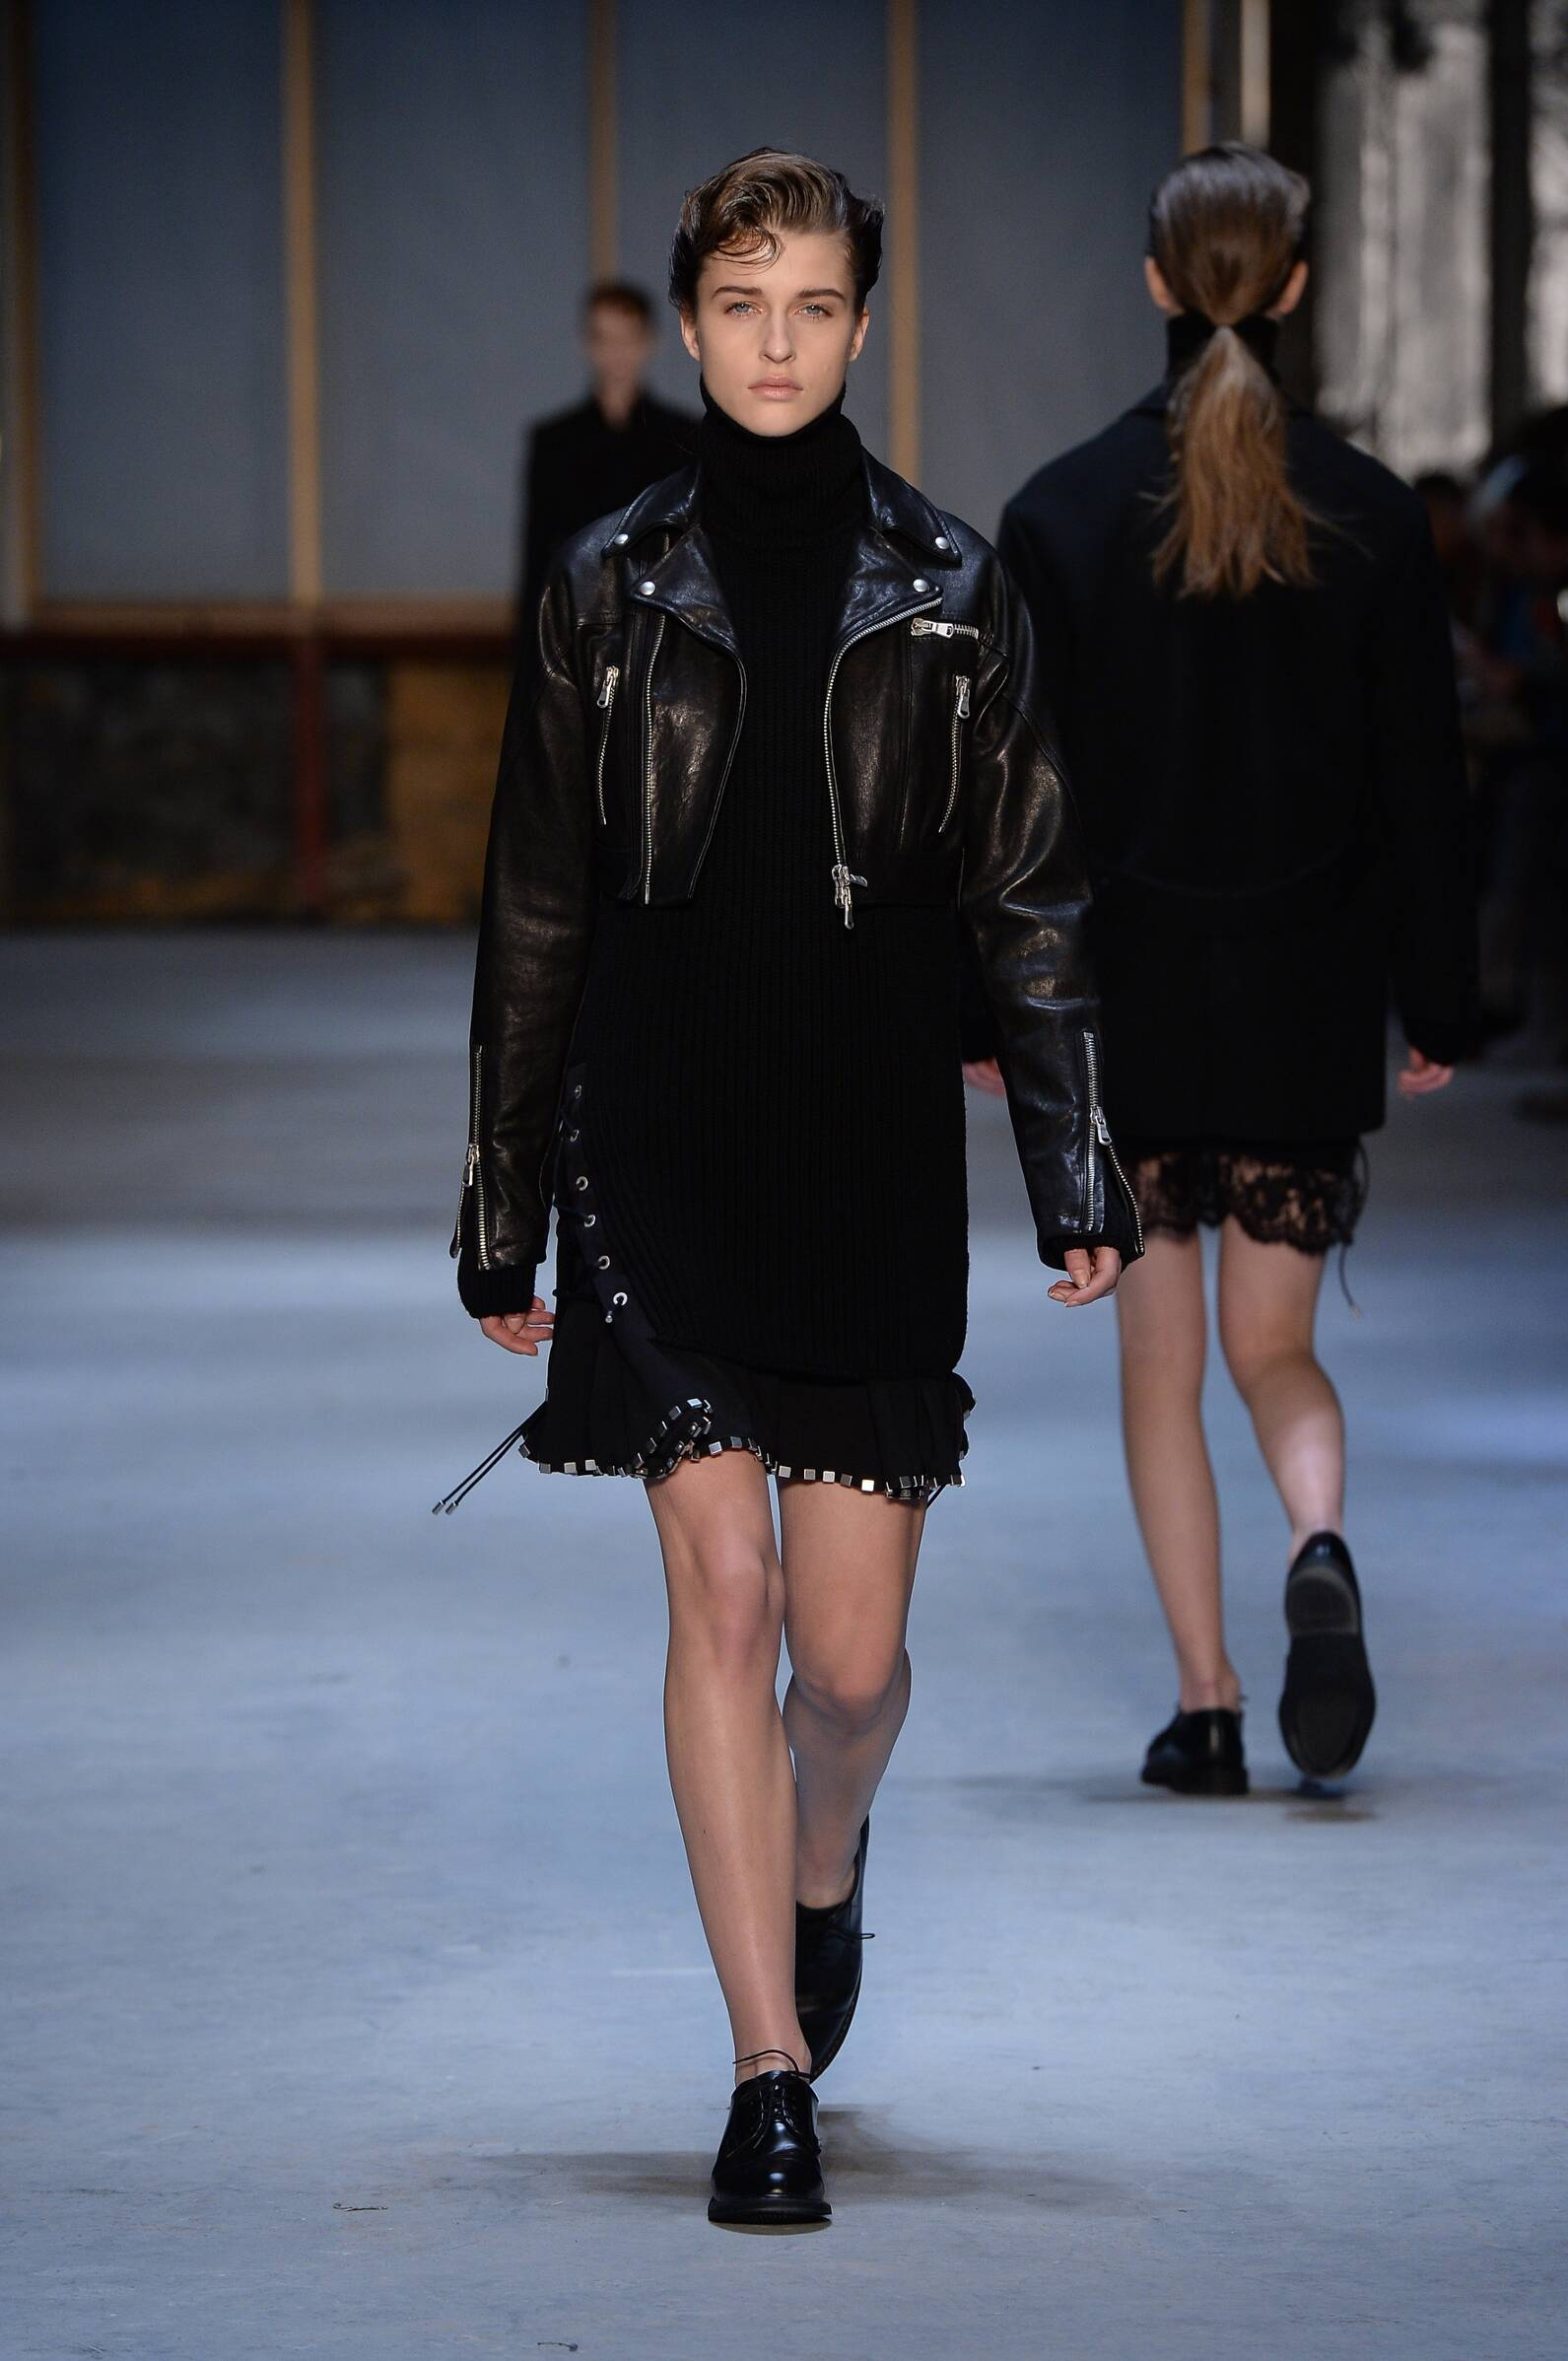 Winter 2015 Fashion Show Diesel Black Gold Collection